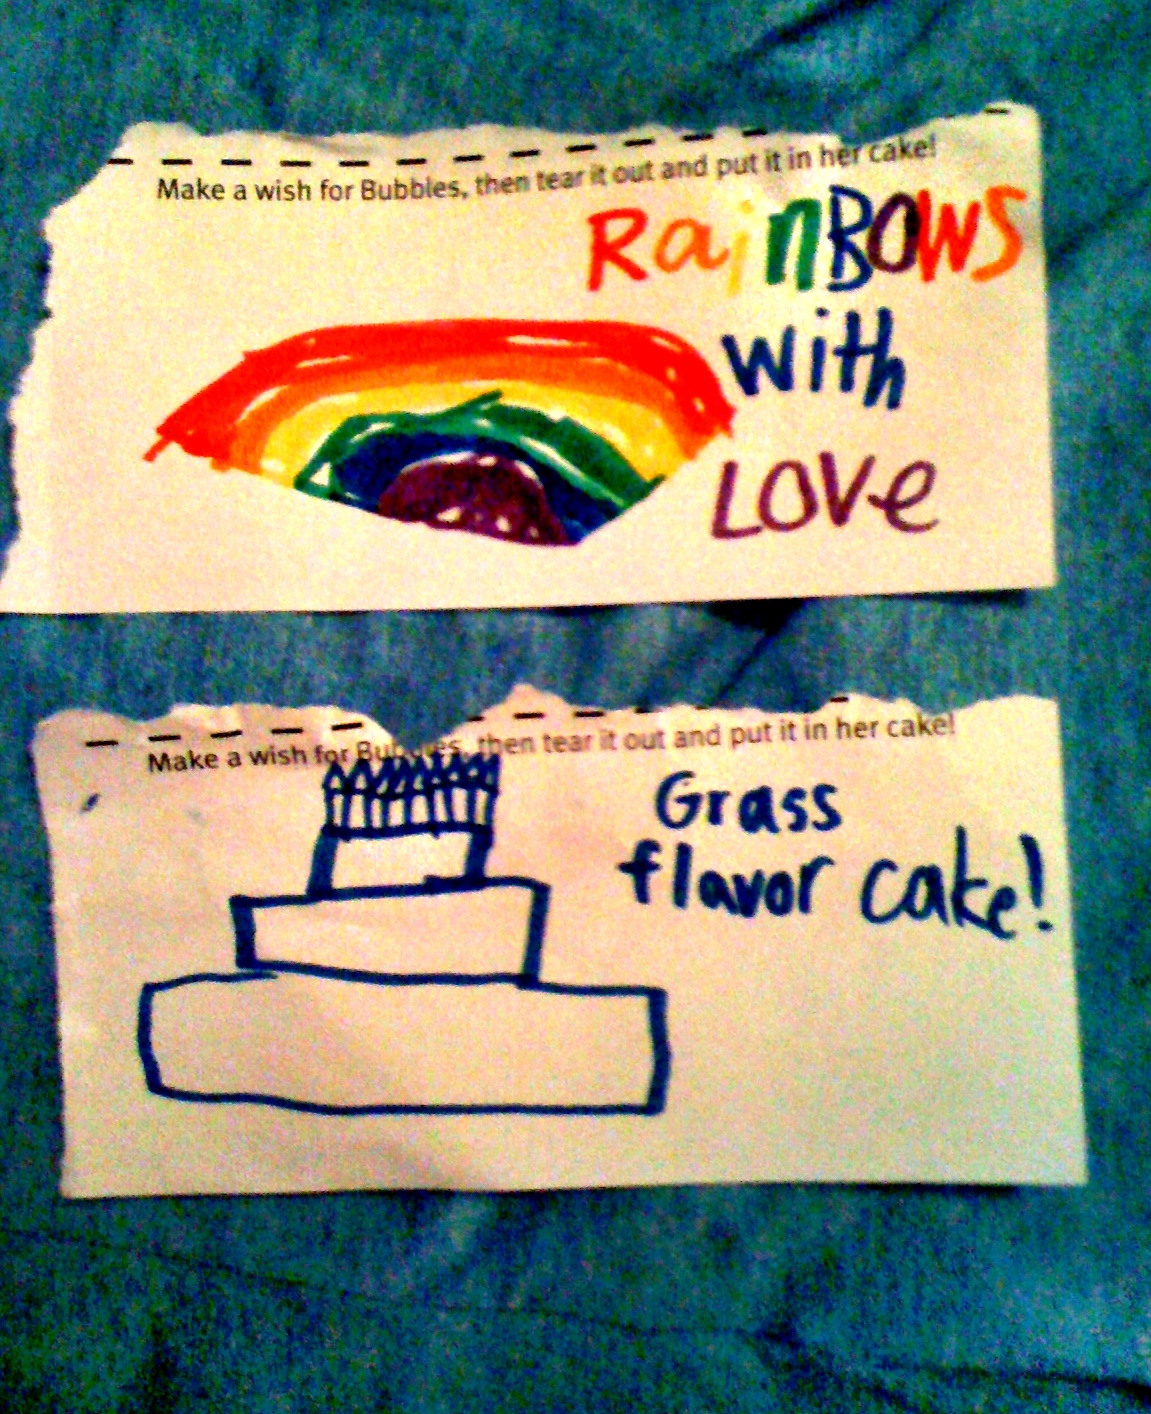 """A few present themed wishes for the birthday girl…   """"Rainbows with love"""" and """"Grass flavored cake""""   Sounds good to me."""